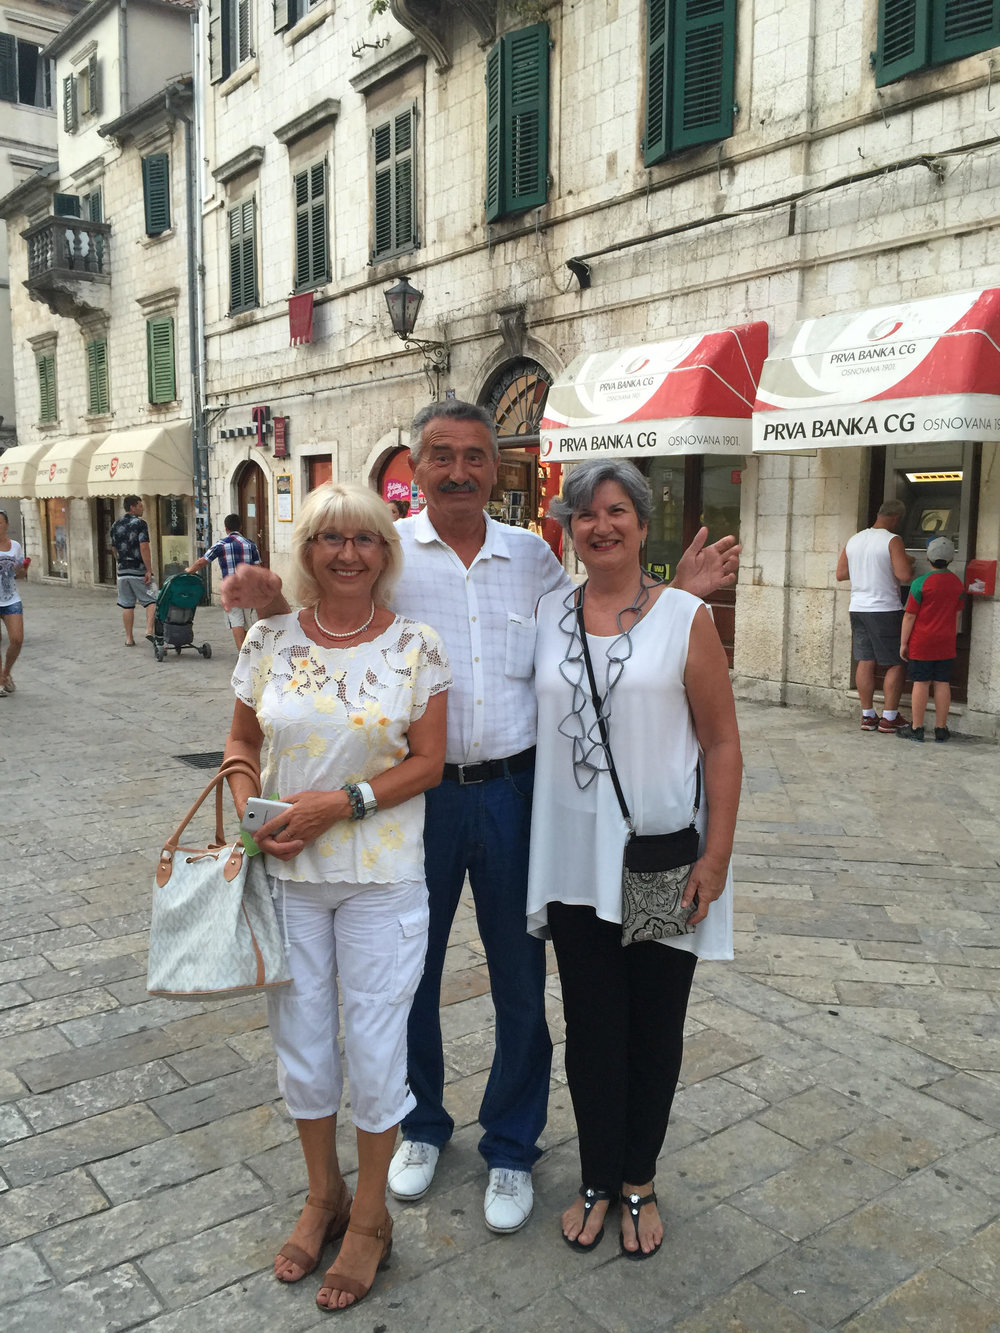 That's me on the right, wearing my 'killer' necklace in Kotor, Montenegro.  With Danka and Rade.